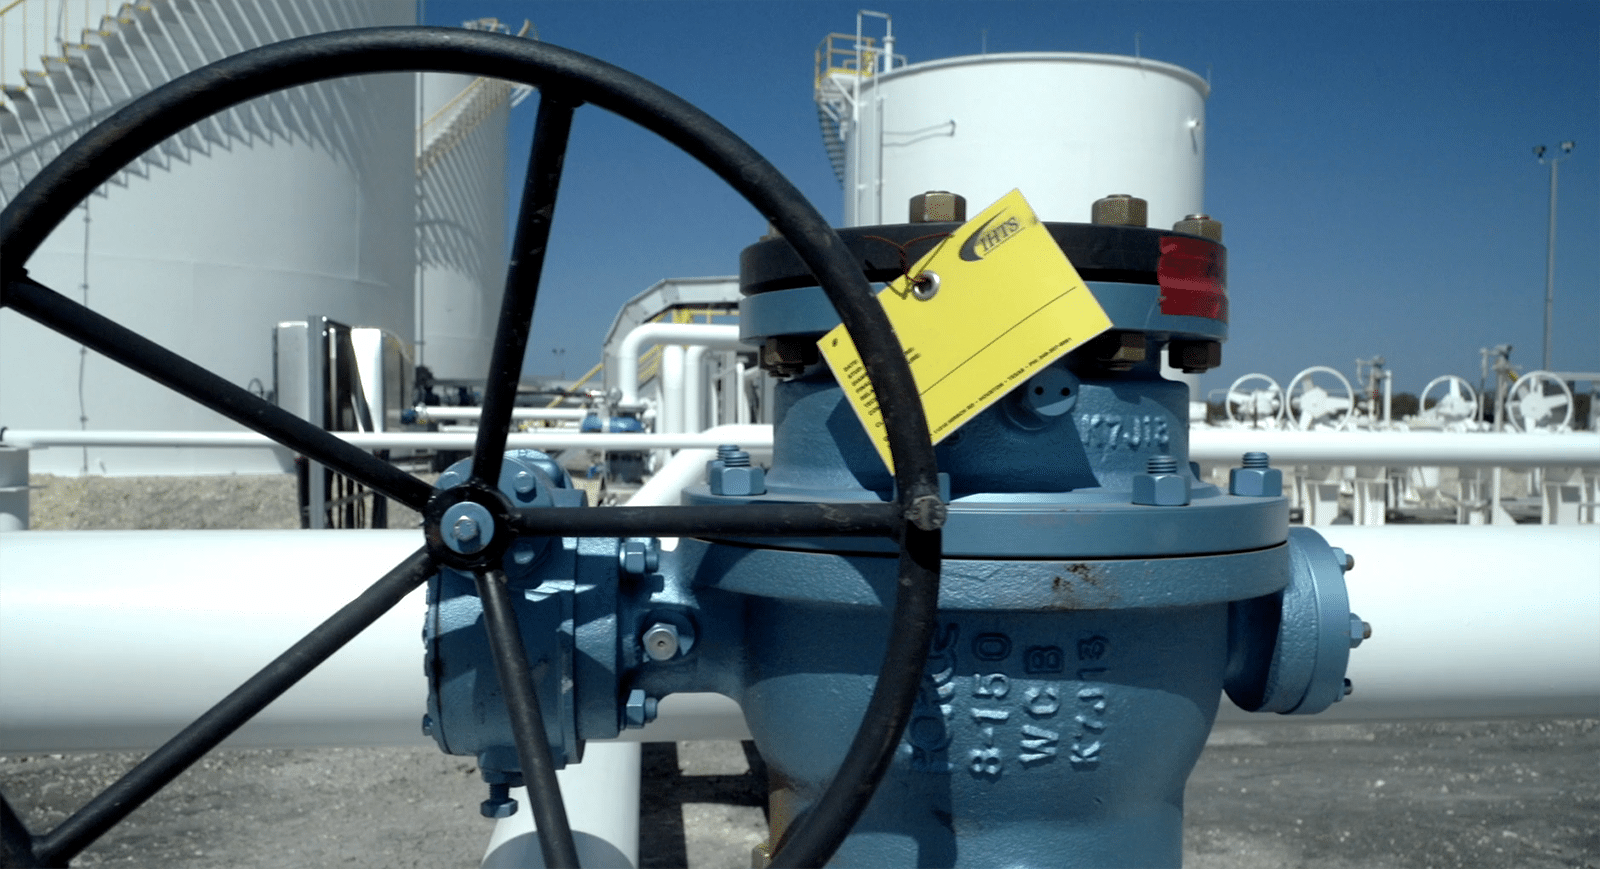 Close-up of a shutoff valve in front of two outdoor water storage tanks and a pipeline.